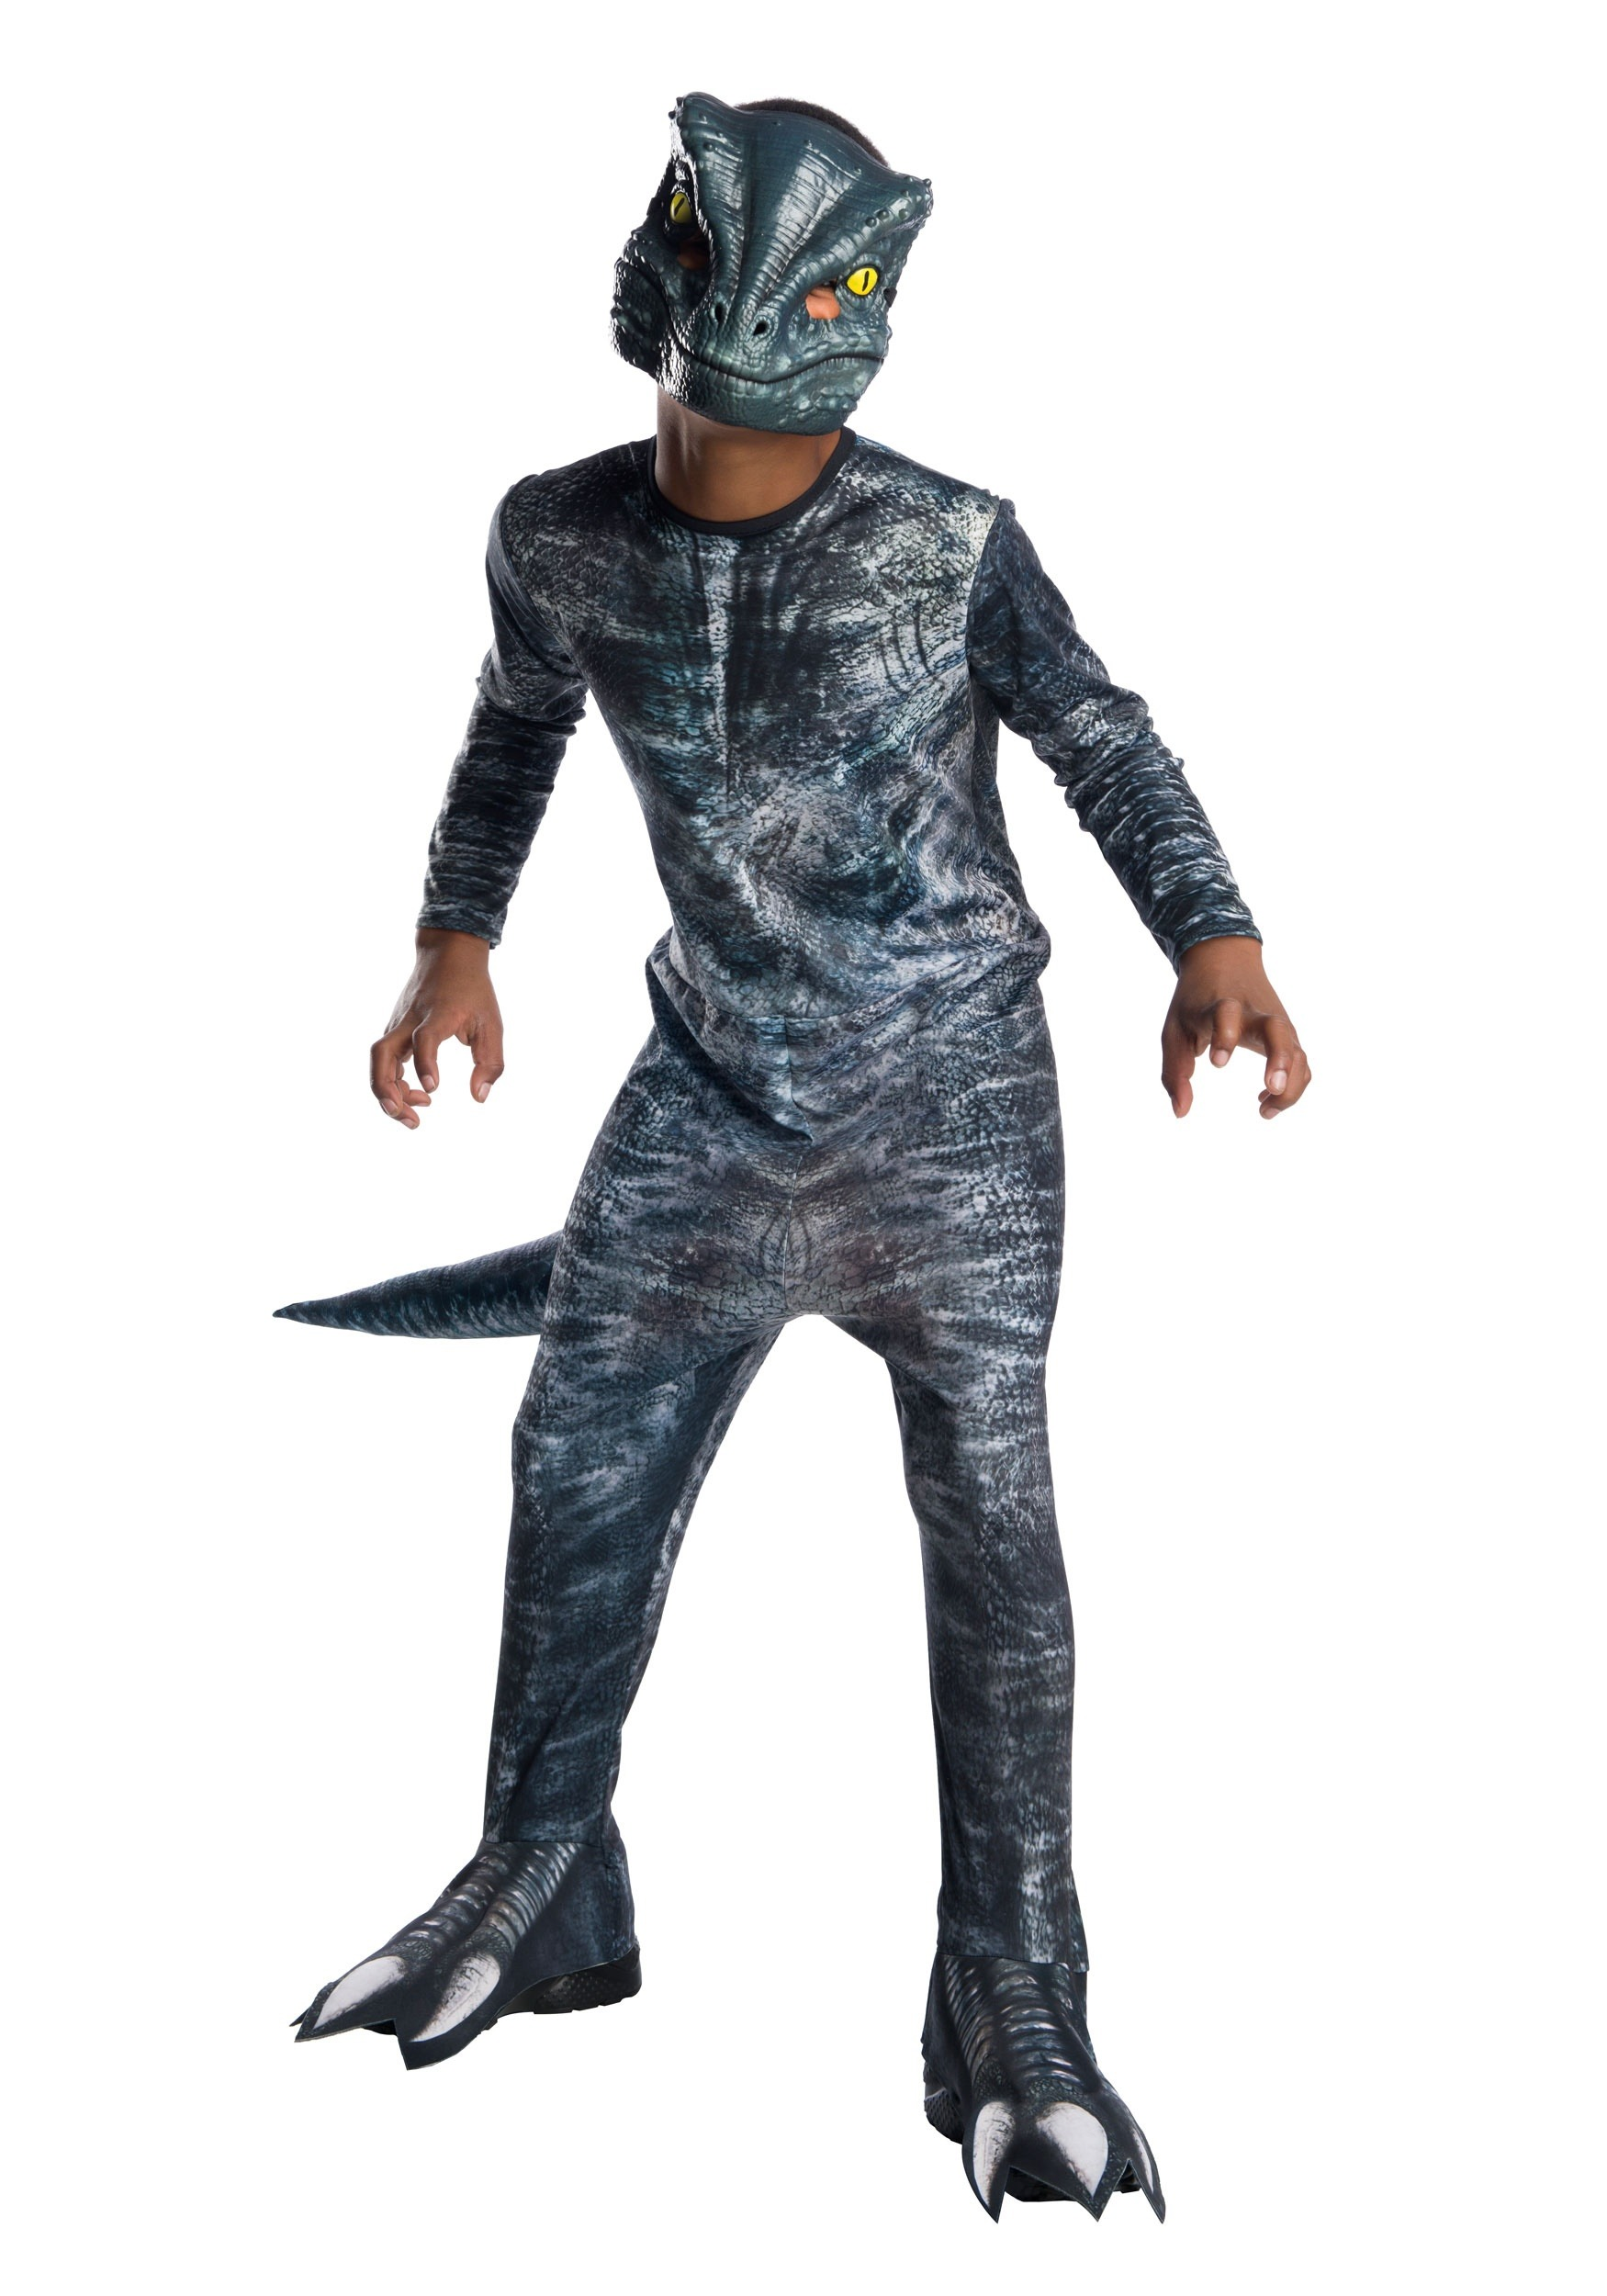 Jurassic World Fallen Kingdom Blue Velociraptor Costume